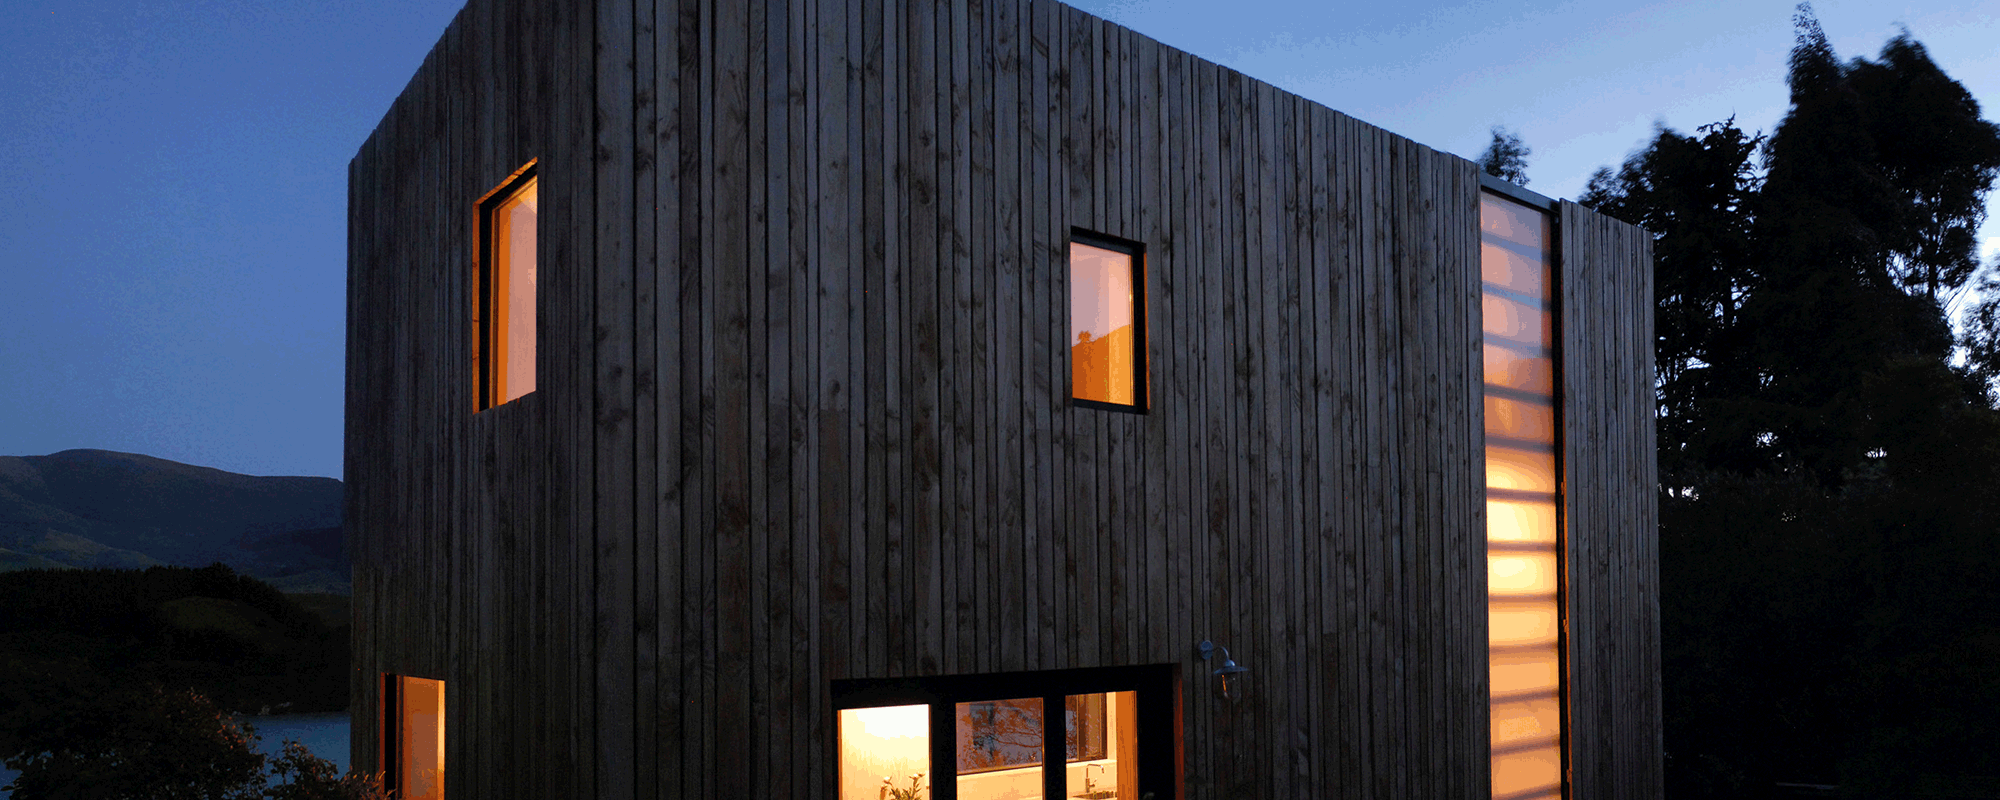 A small modern building, with vertical wood on the outisde taken at dusk, with warmly lit windows.